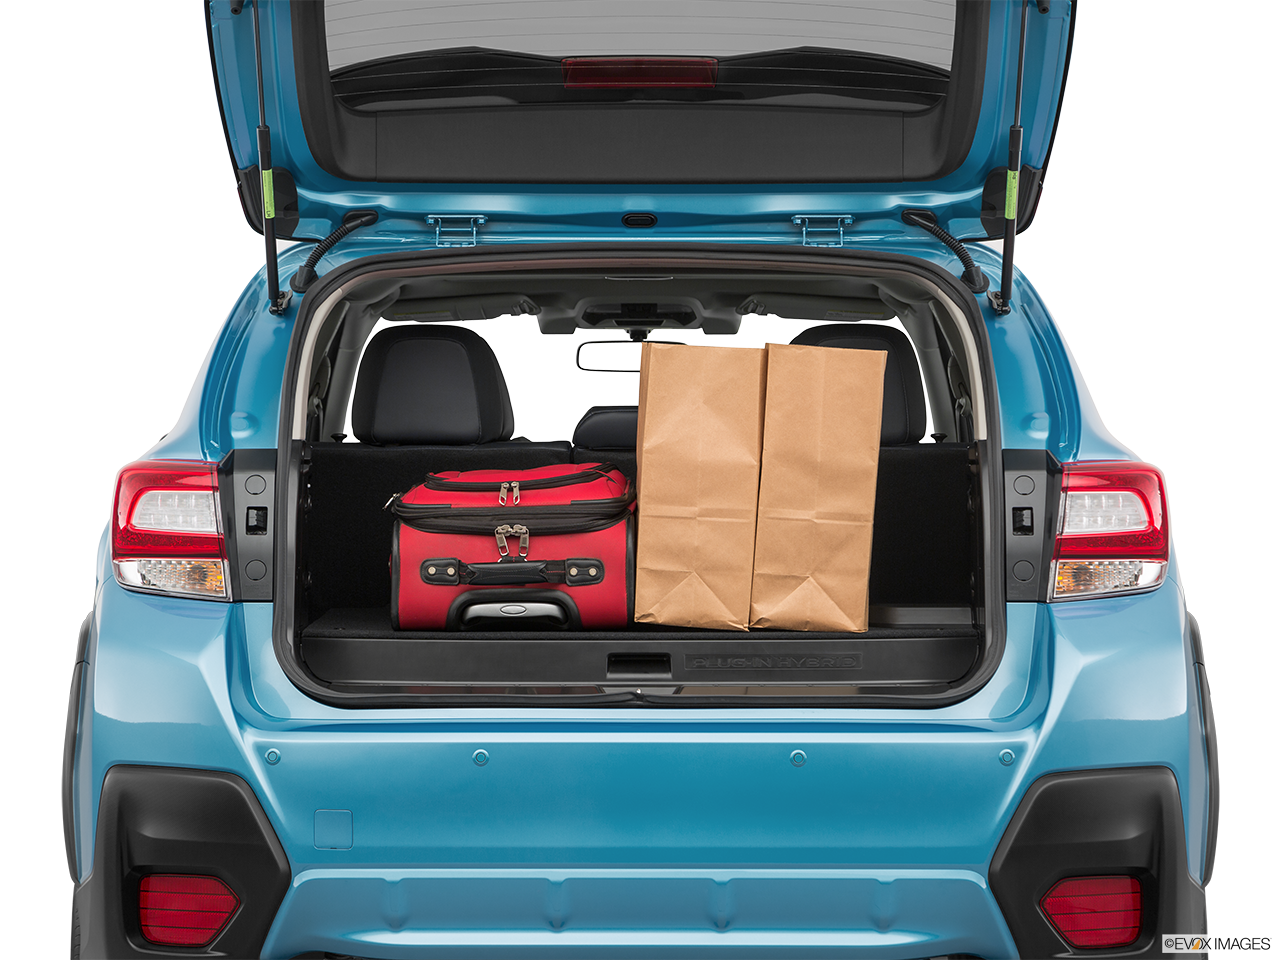 Trunk view of the Subaru Crosstrek Hybrid